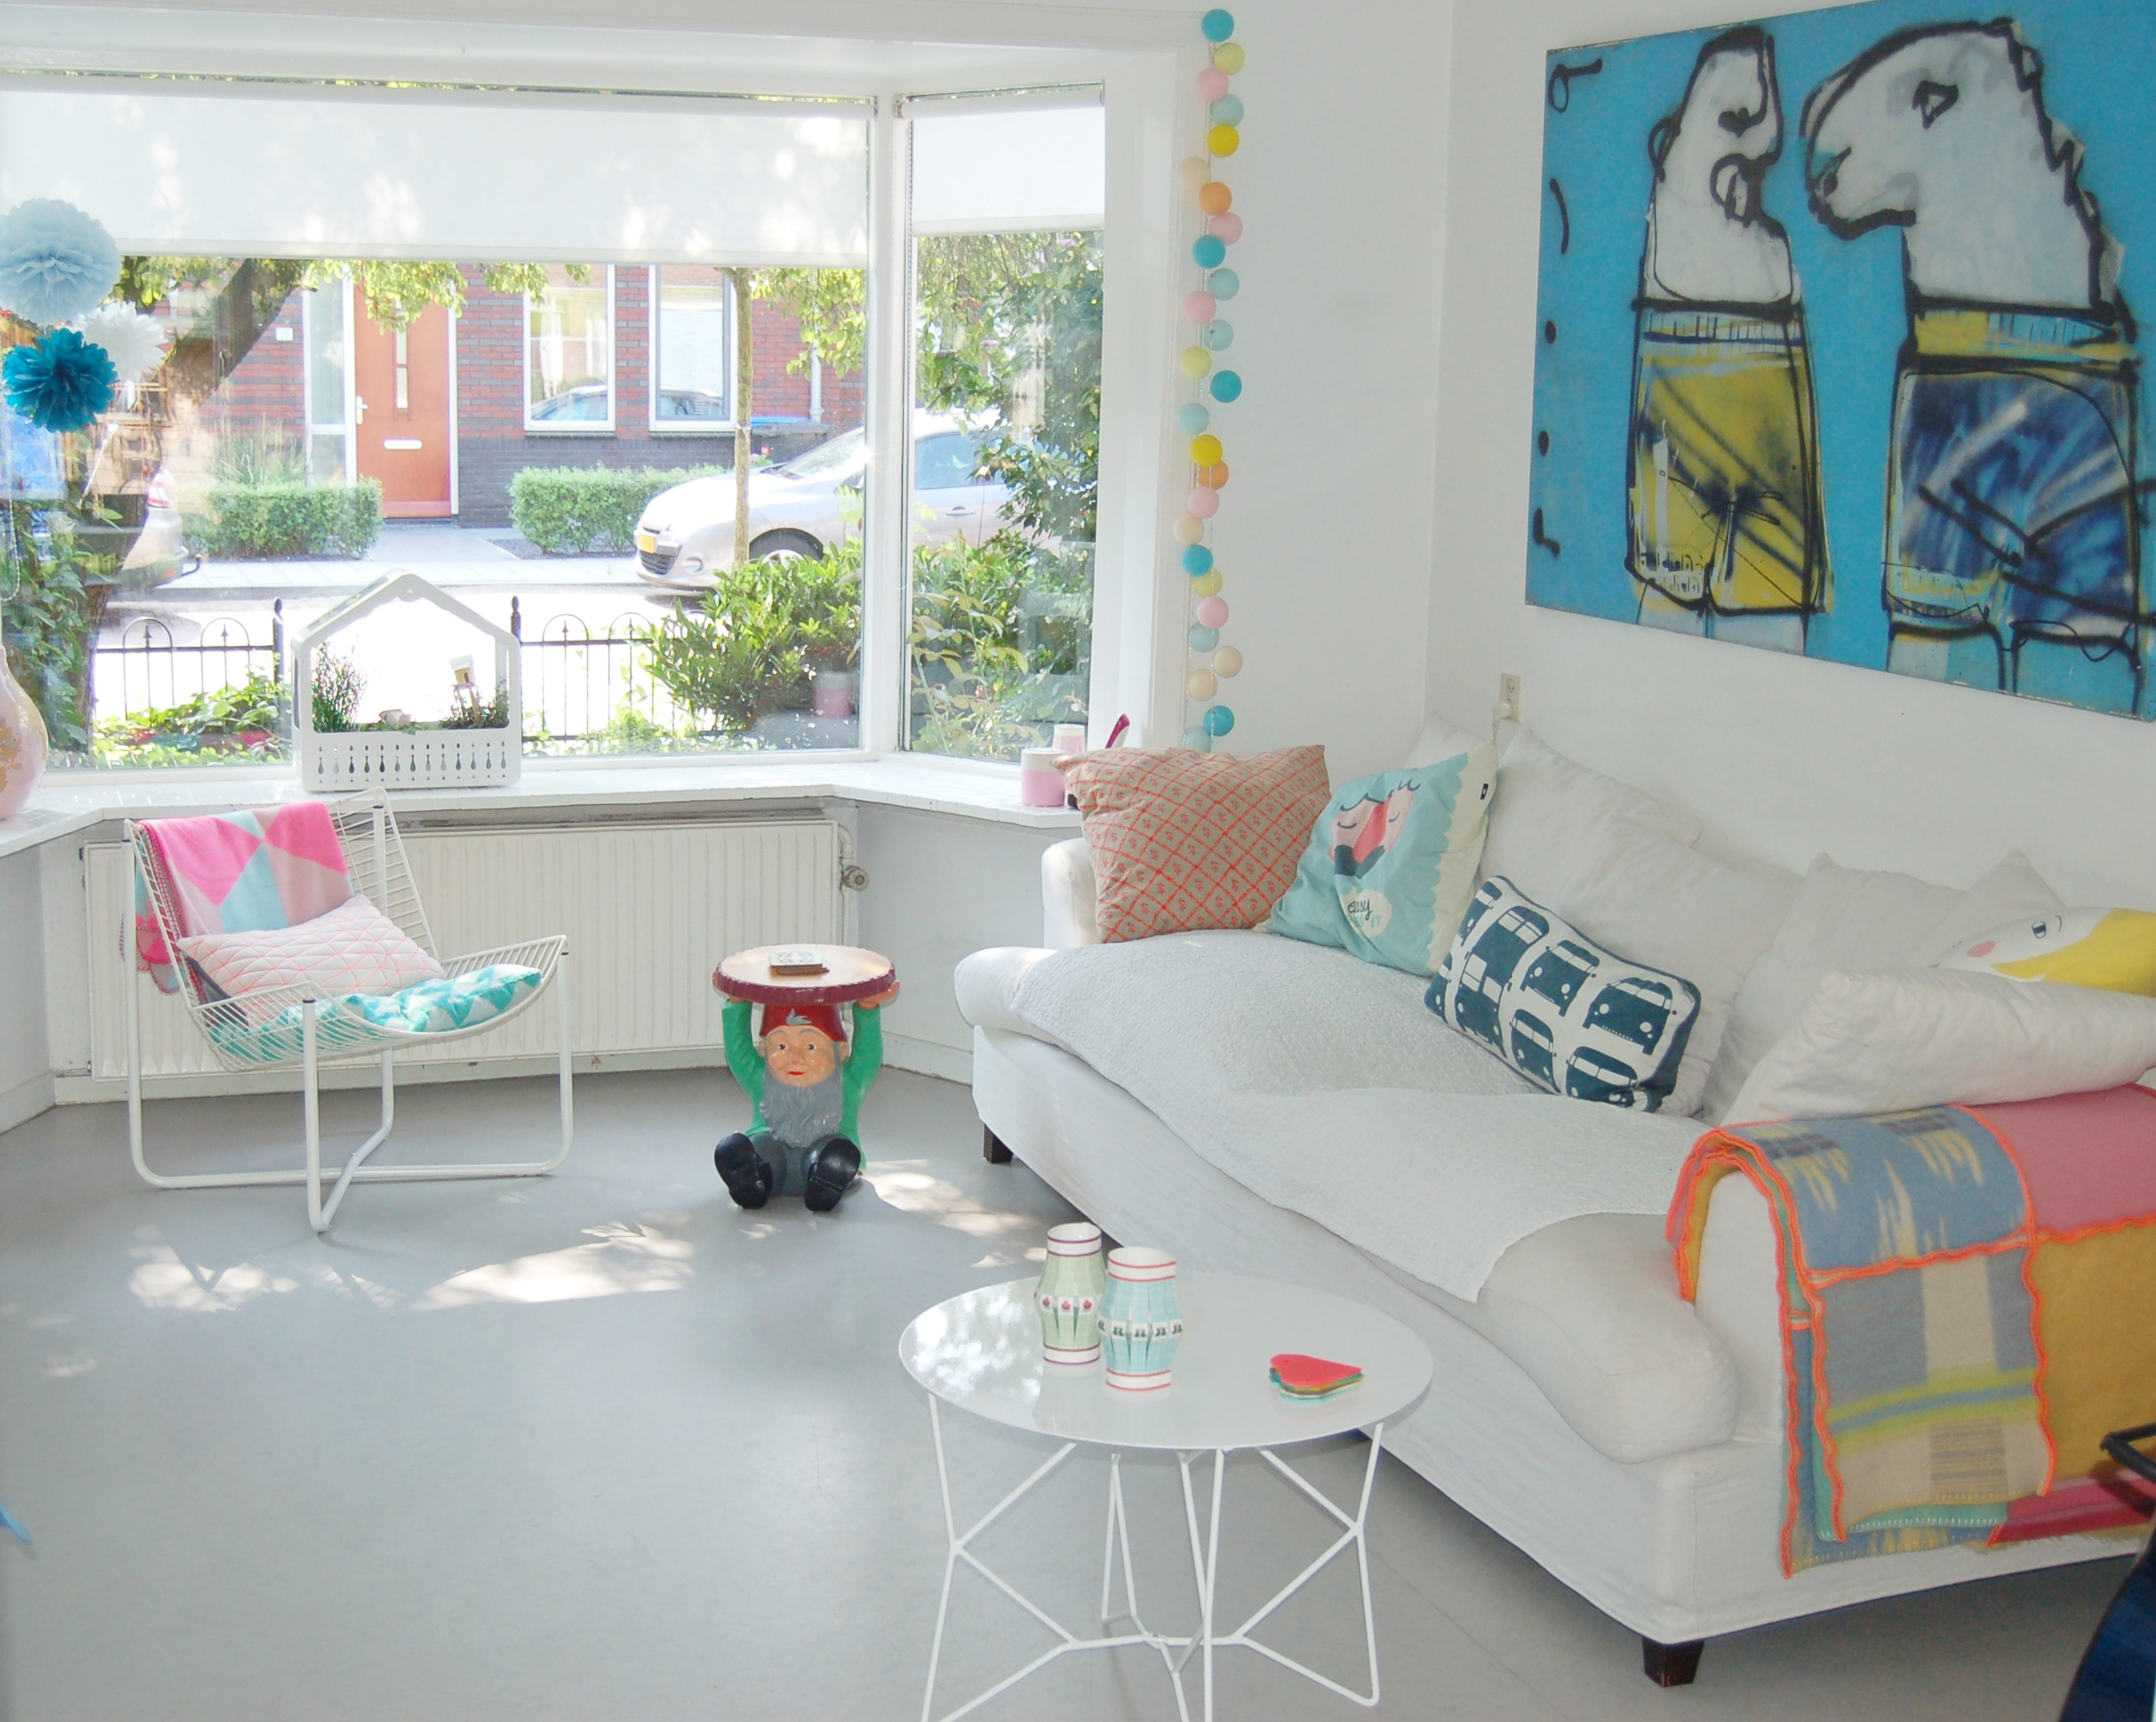 http://www.inspiratie-interieur.nl/images/ant.JPG